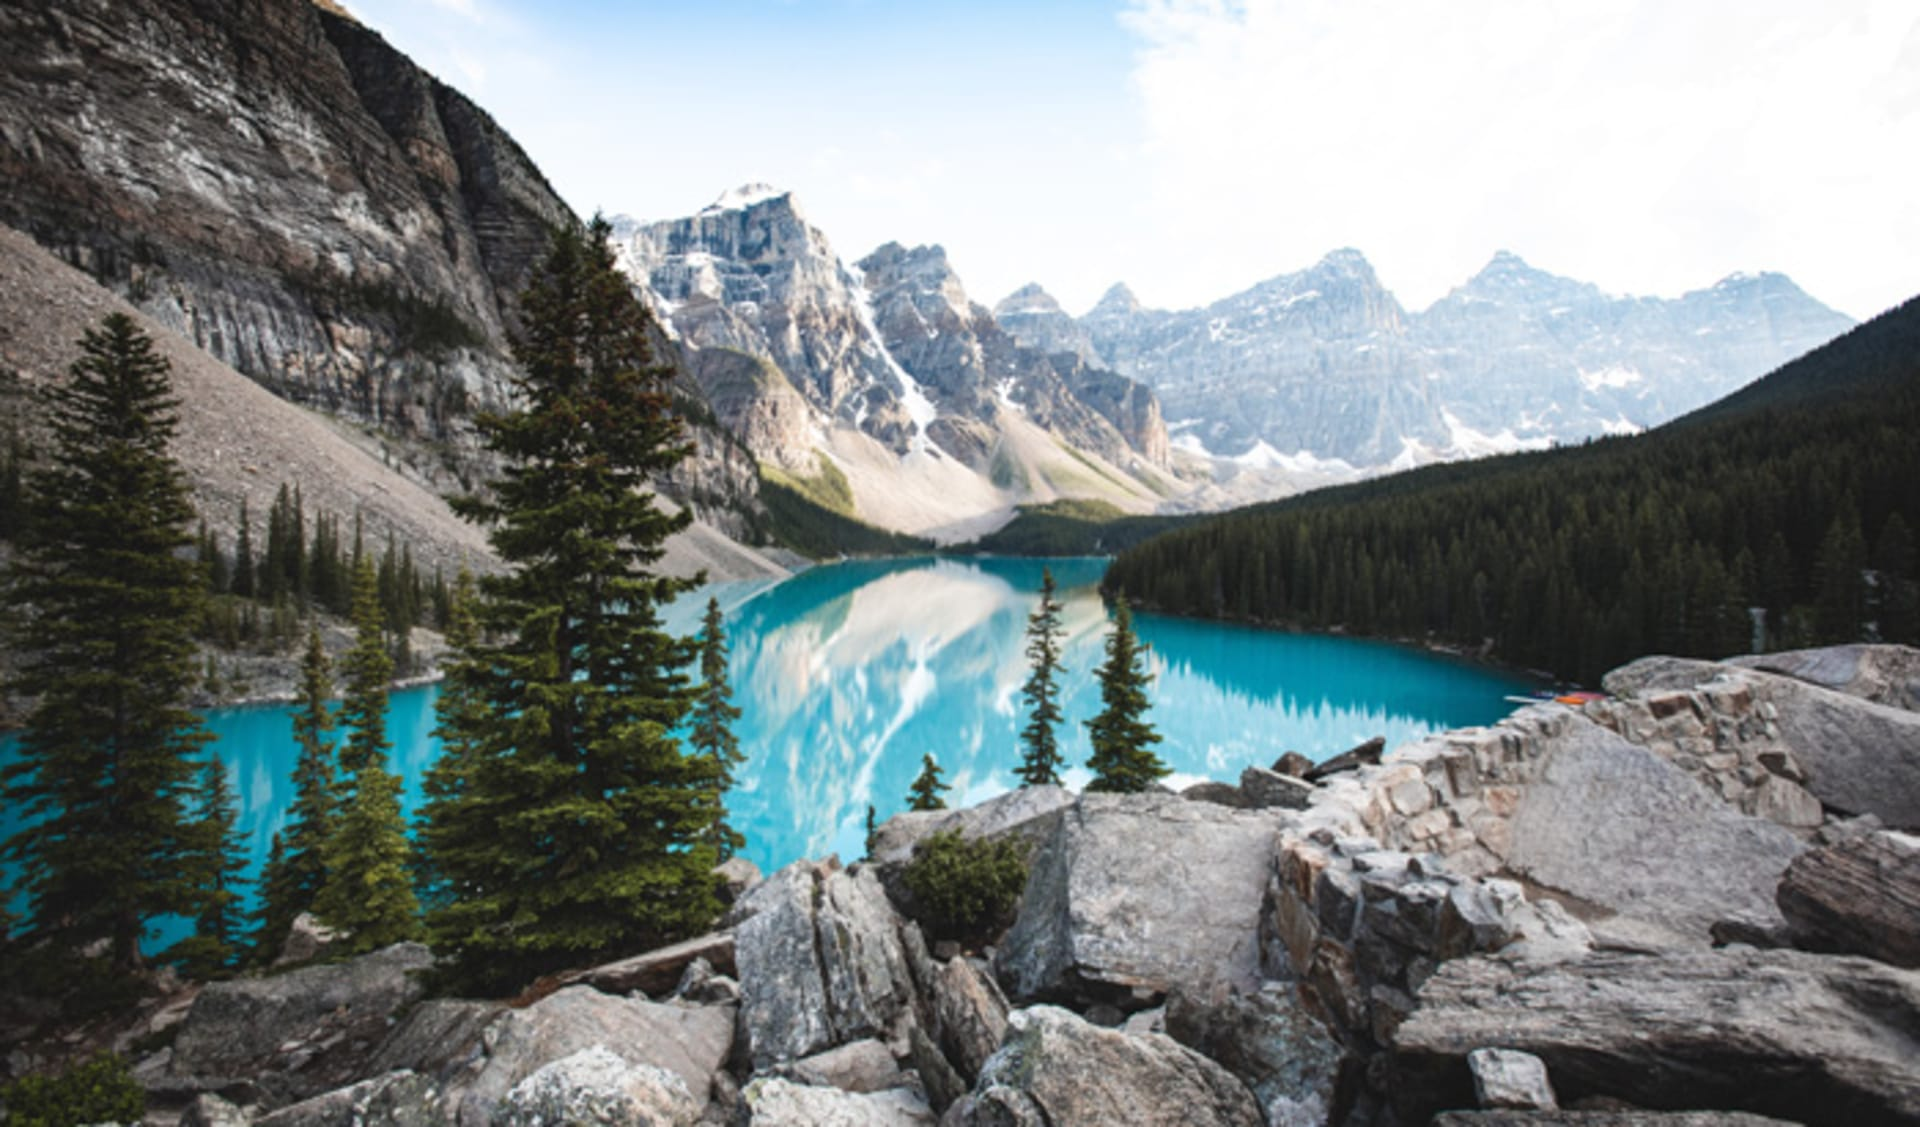 View of Moraine Lake from the Rock Pile in Banff, Alberta